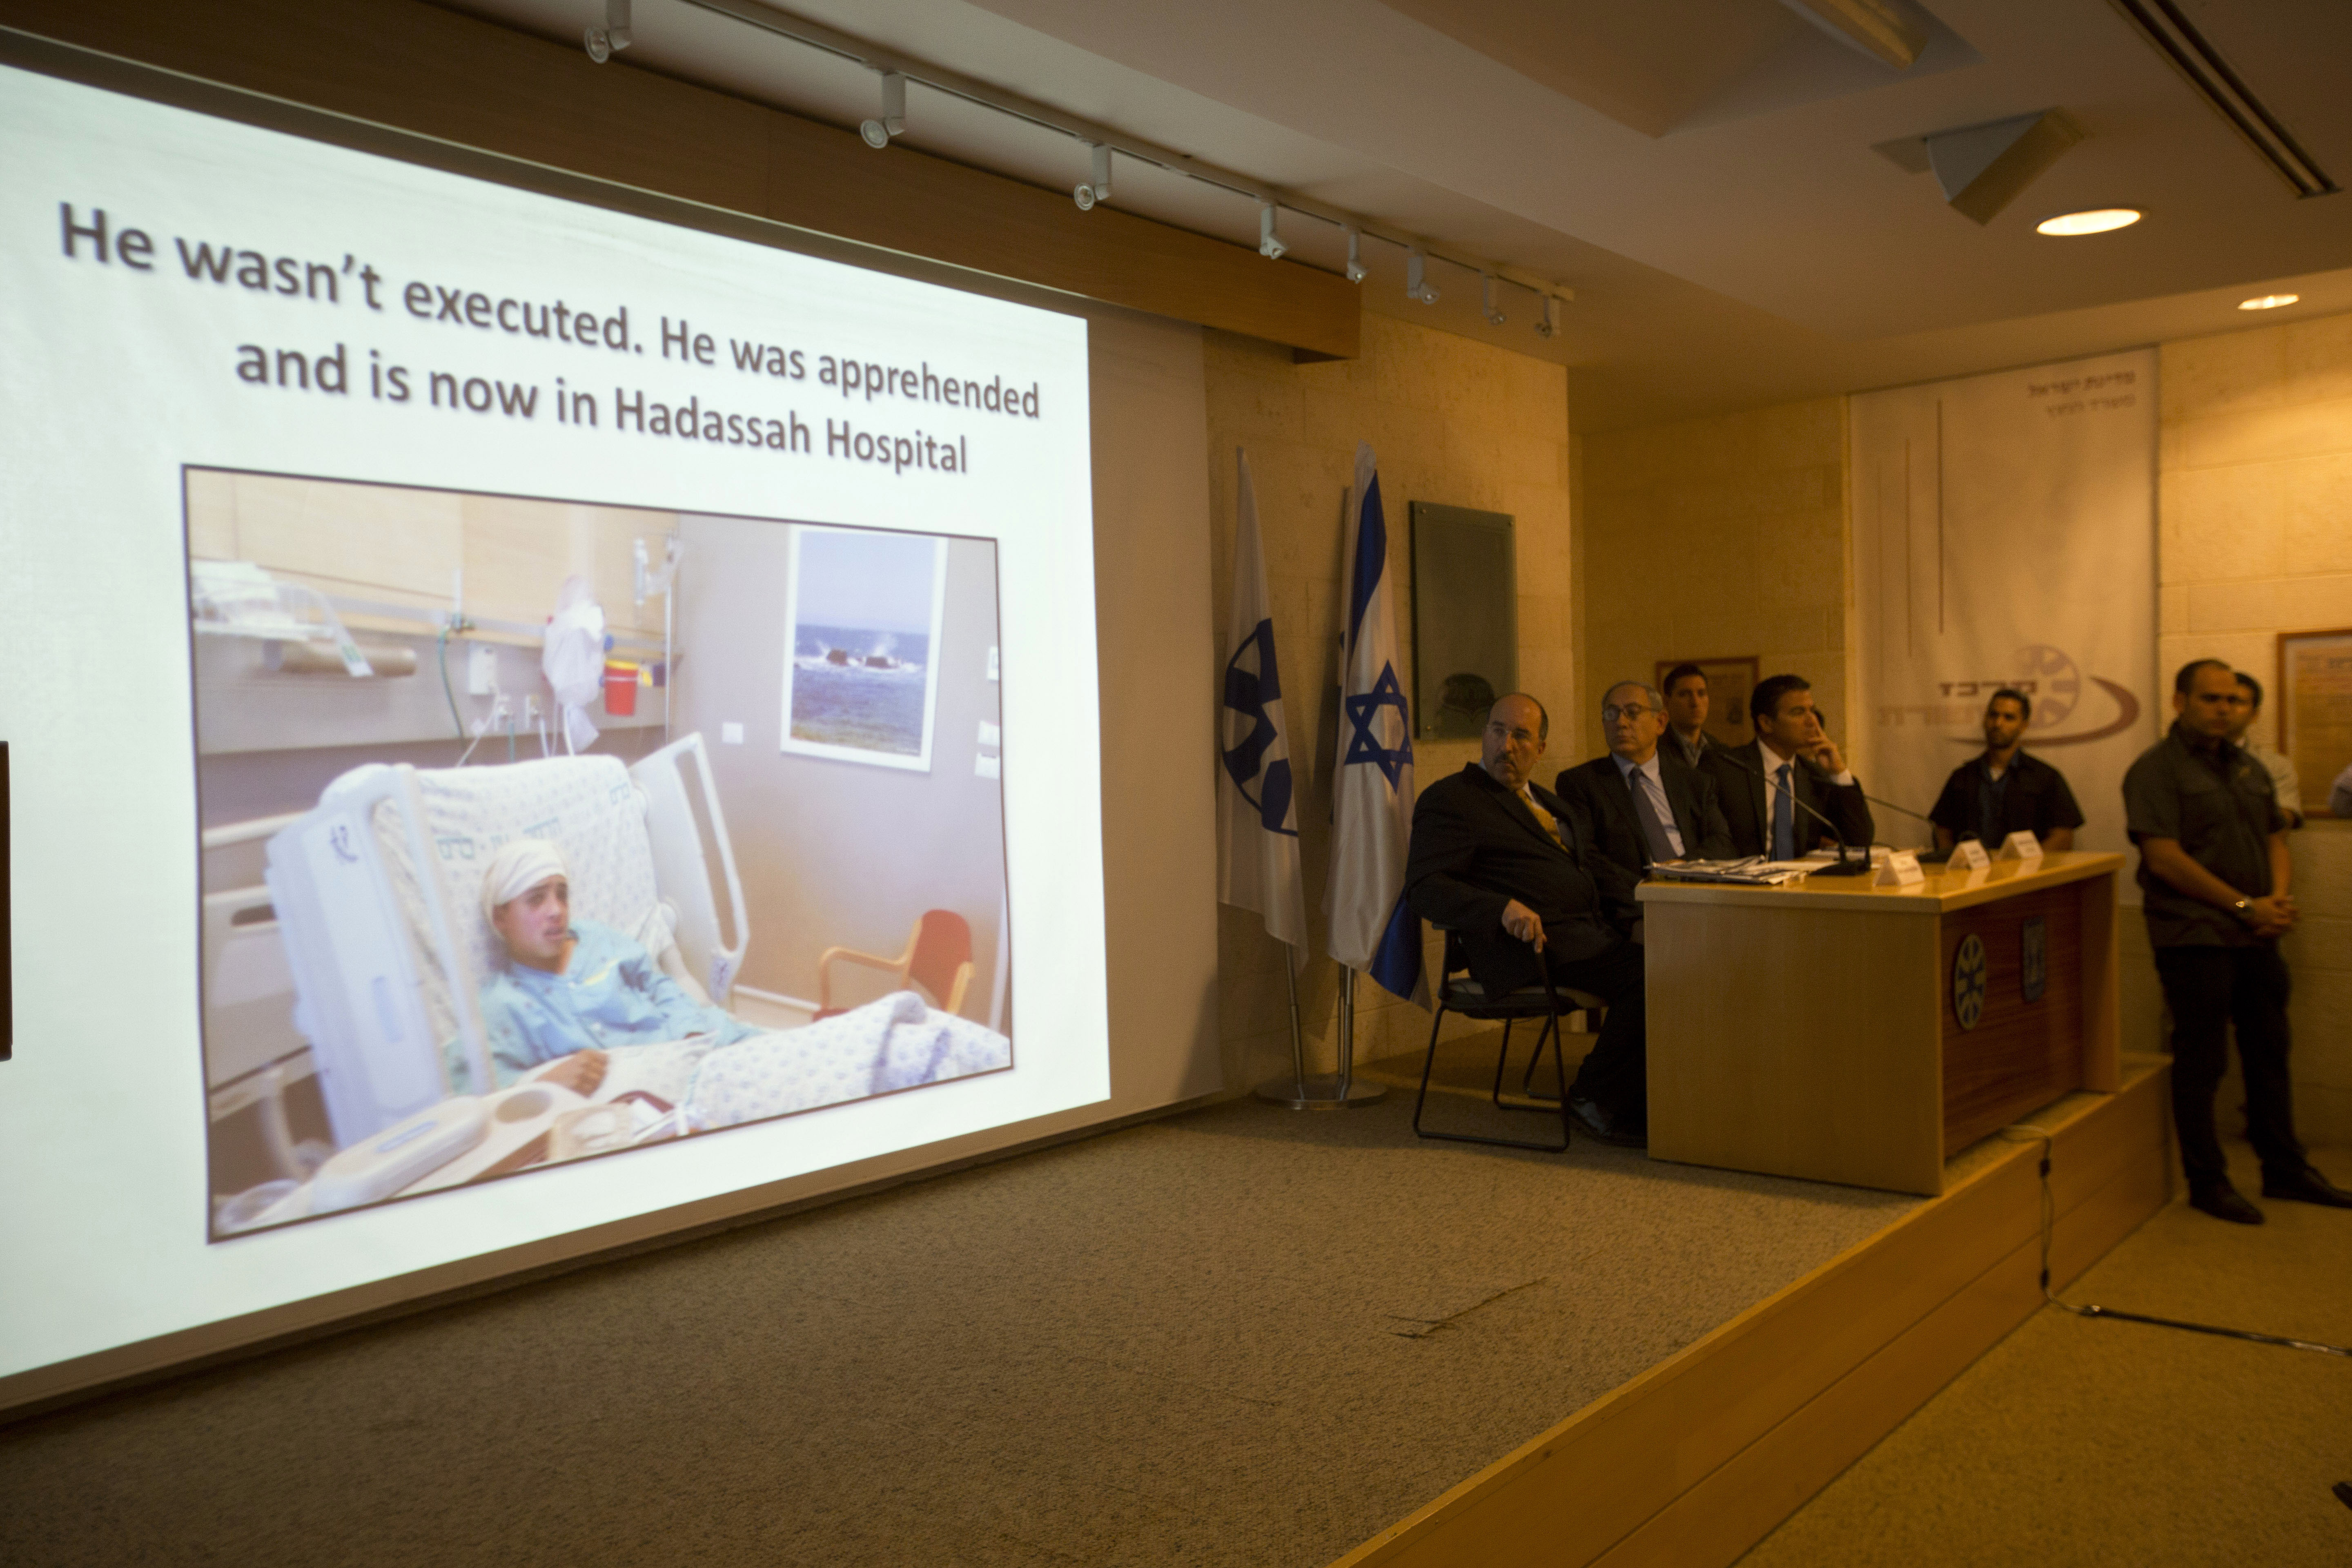 Israeli Prime Minister Benjamin Netanyahu, second left, watches the screen during a press conference at the Foreign Ministry in Jerusalem, Oct. 15, 2015.